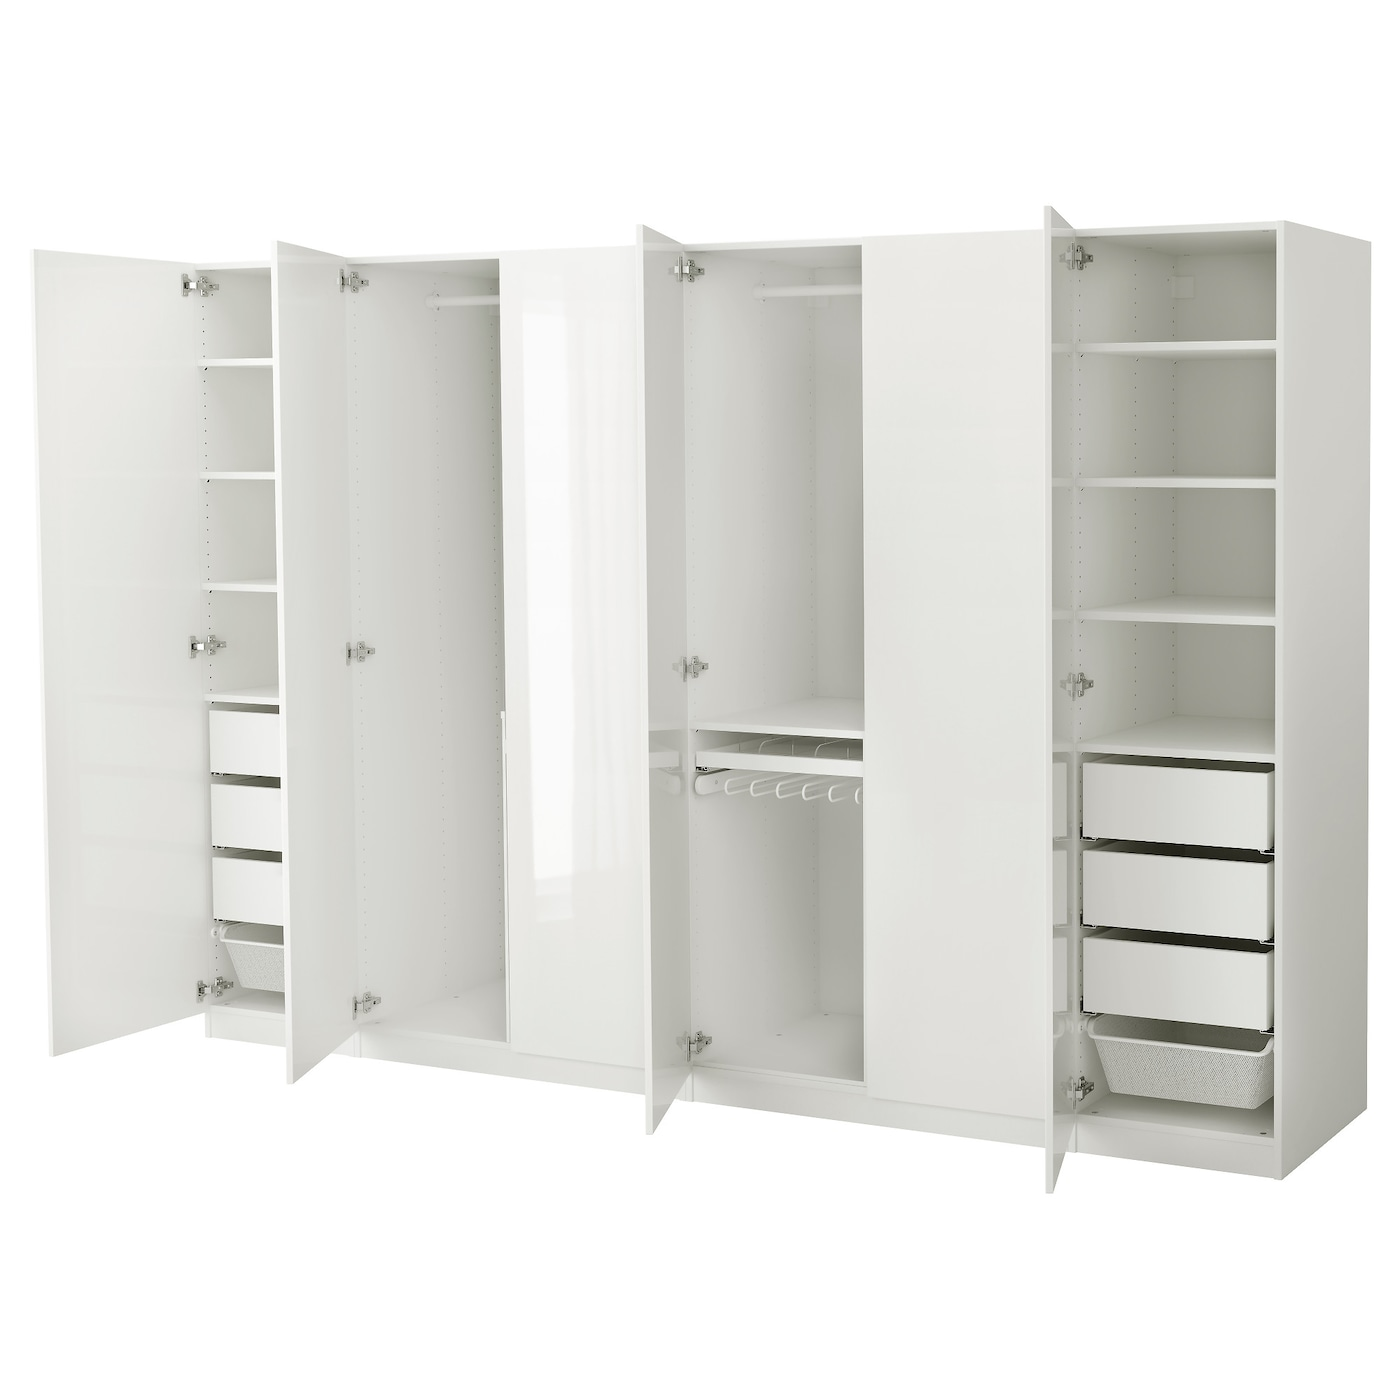 organizers ikea ideas full concept design closet for divider sliding cool of size wardrobe pax software systems doors room planner photos